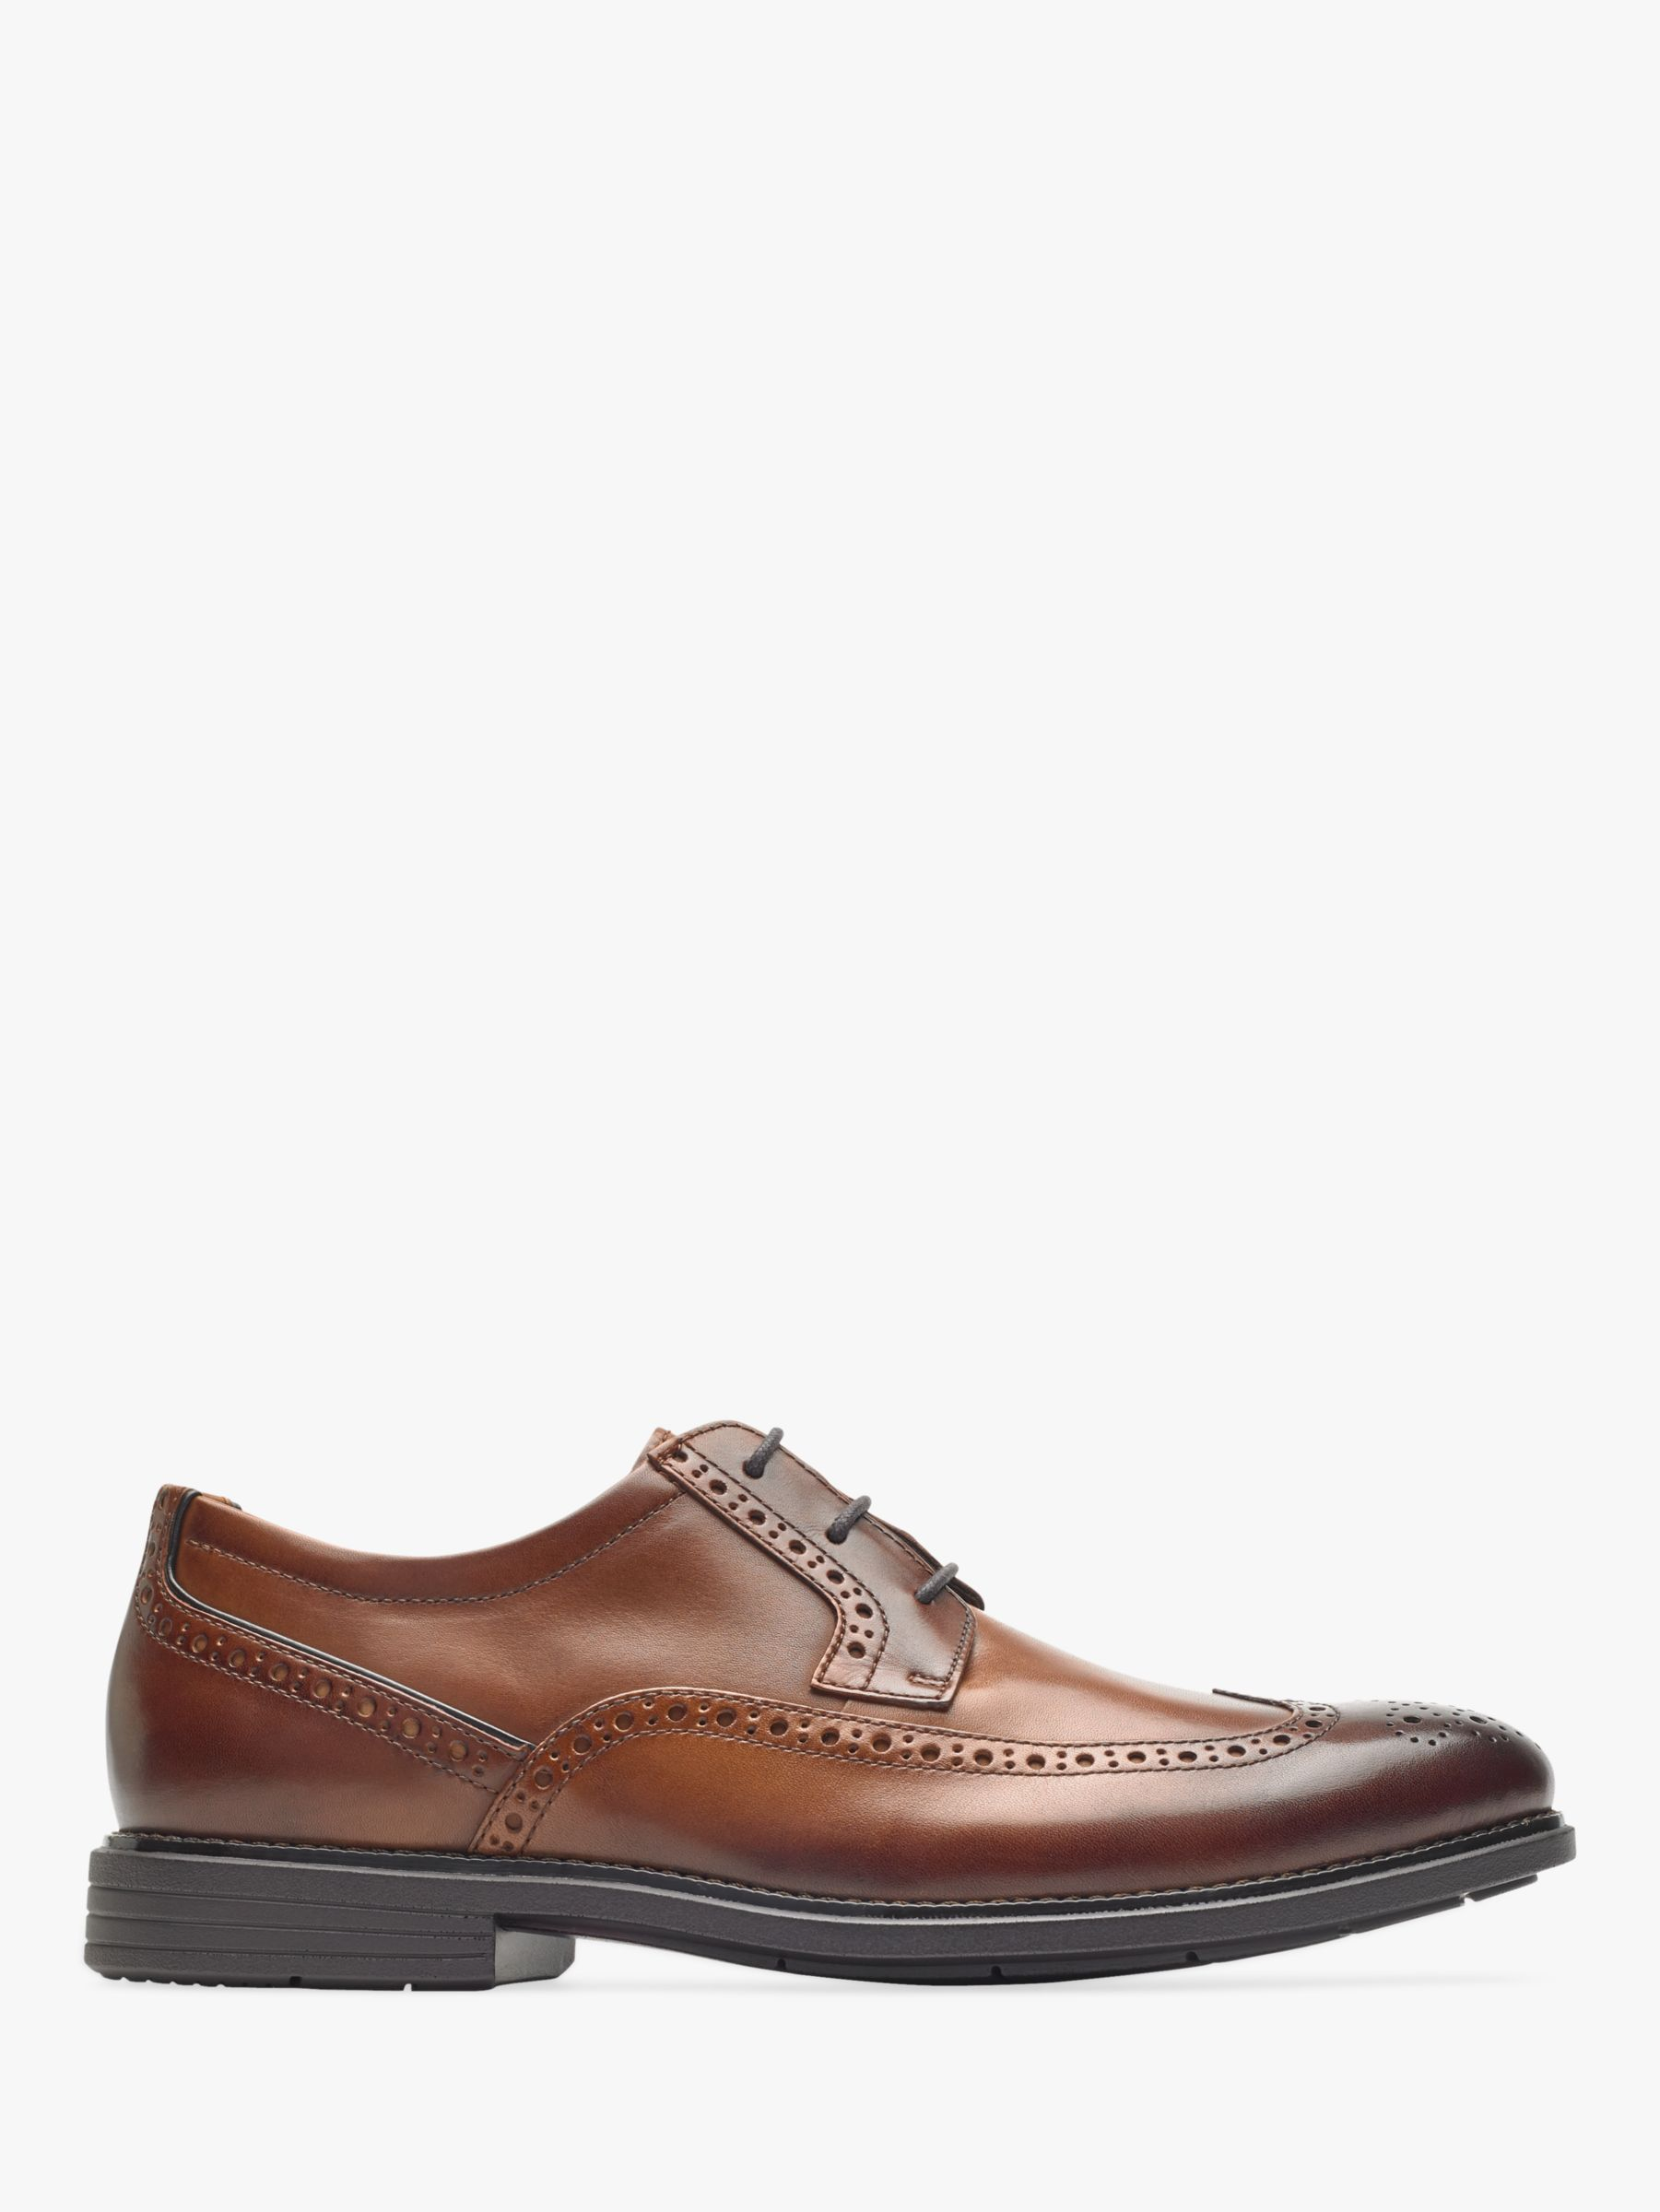 Rockport Rockport Madson Wingtip Leather Brogues, Cognac